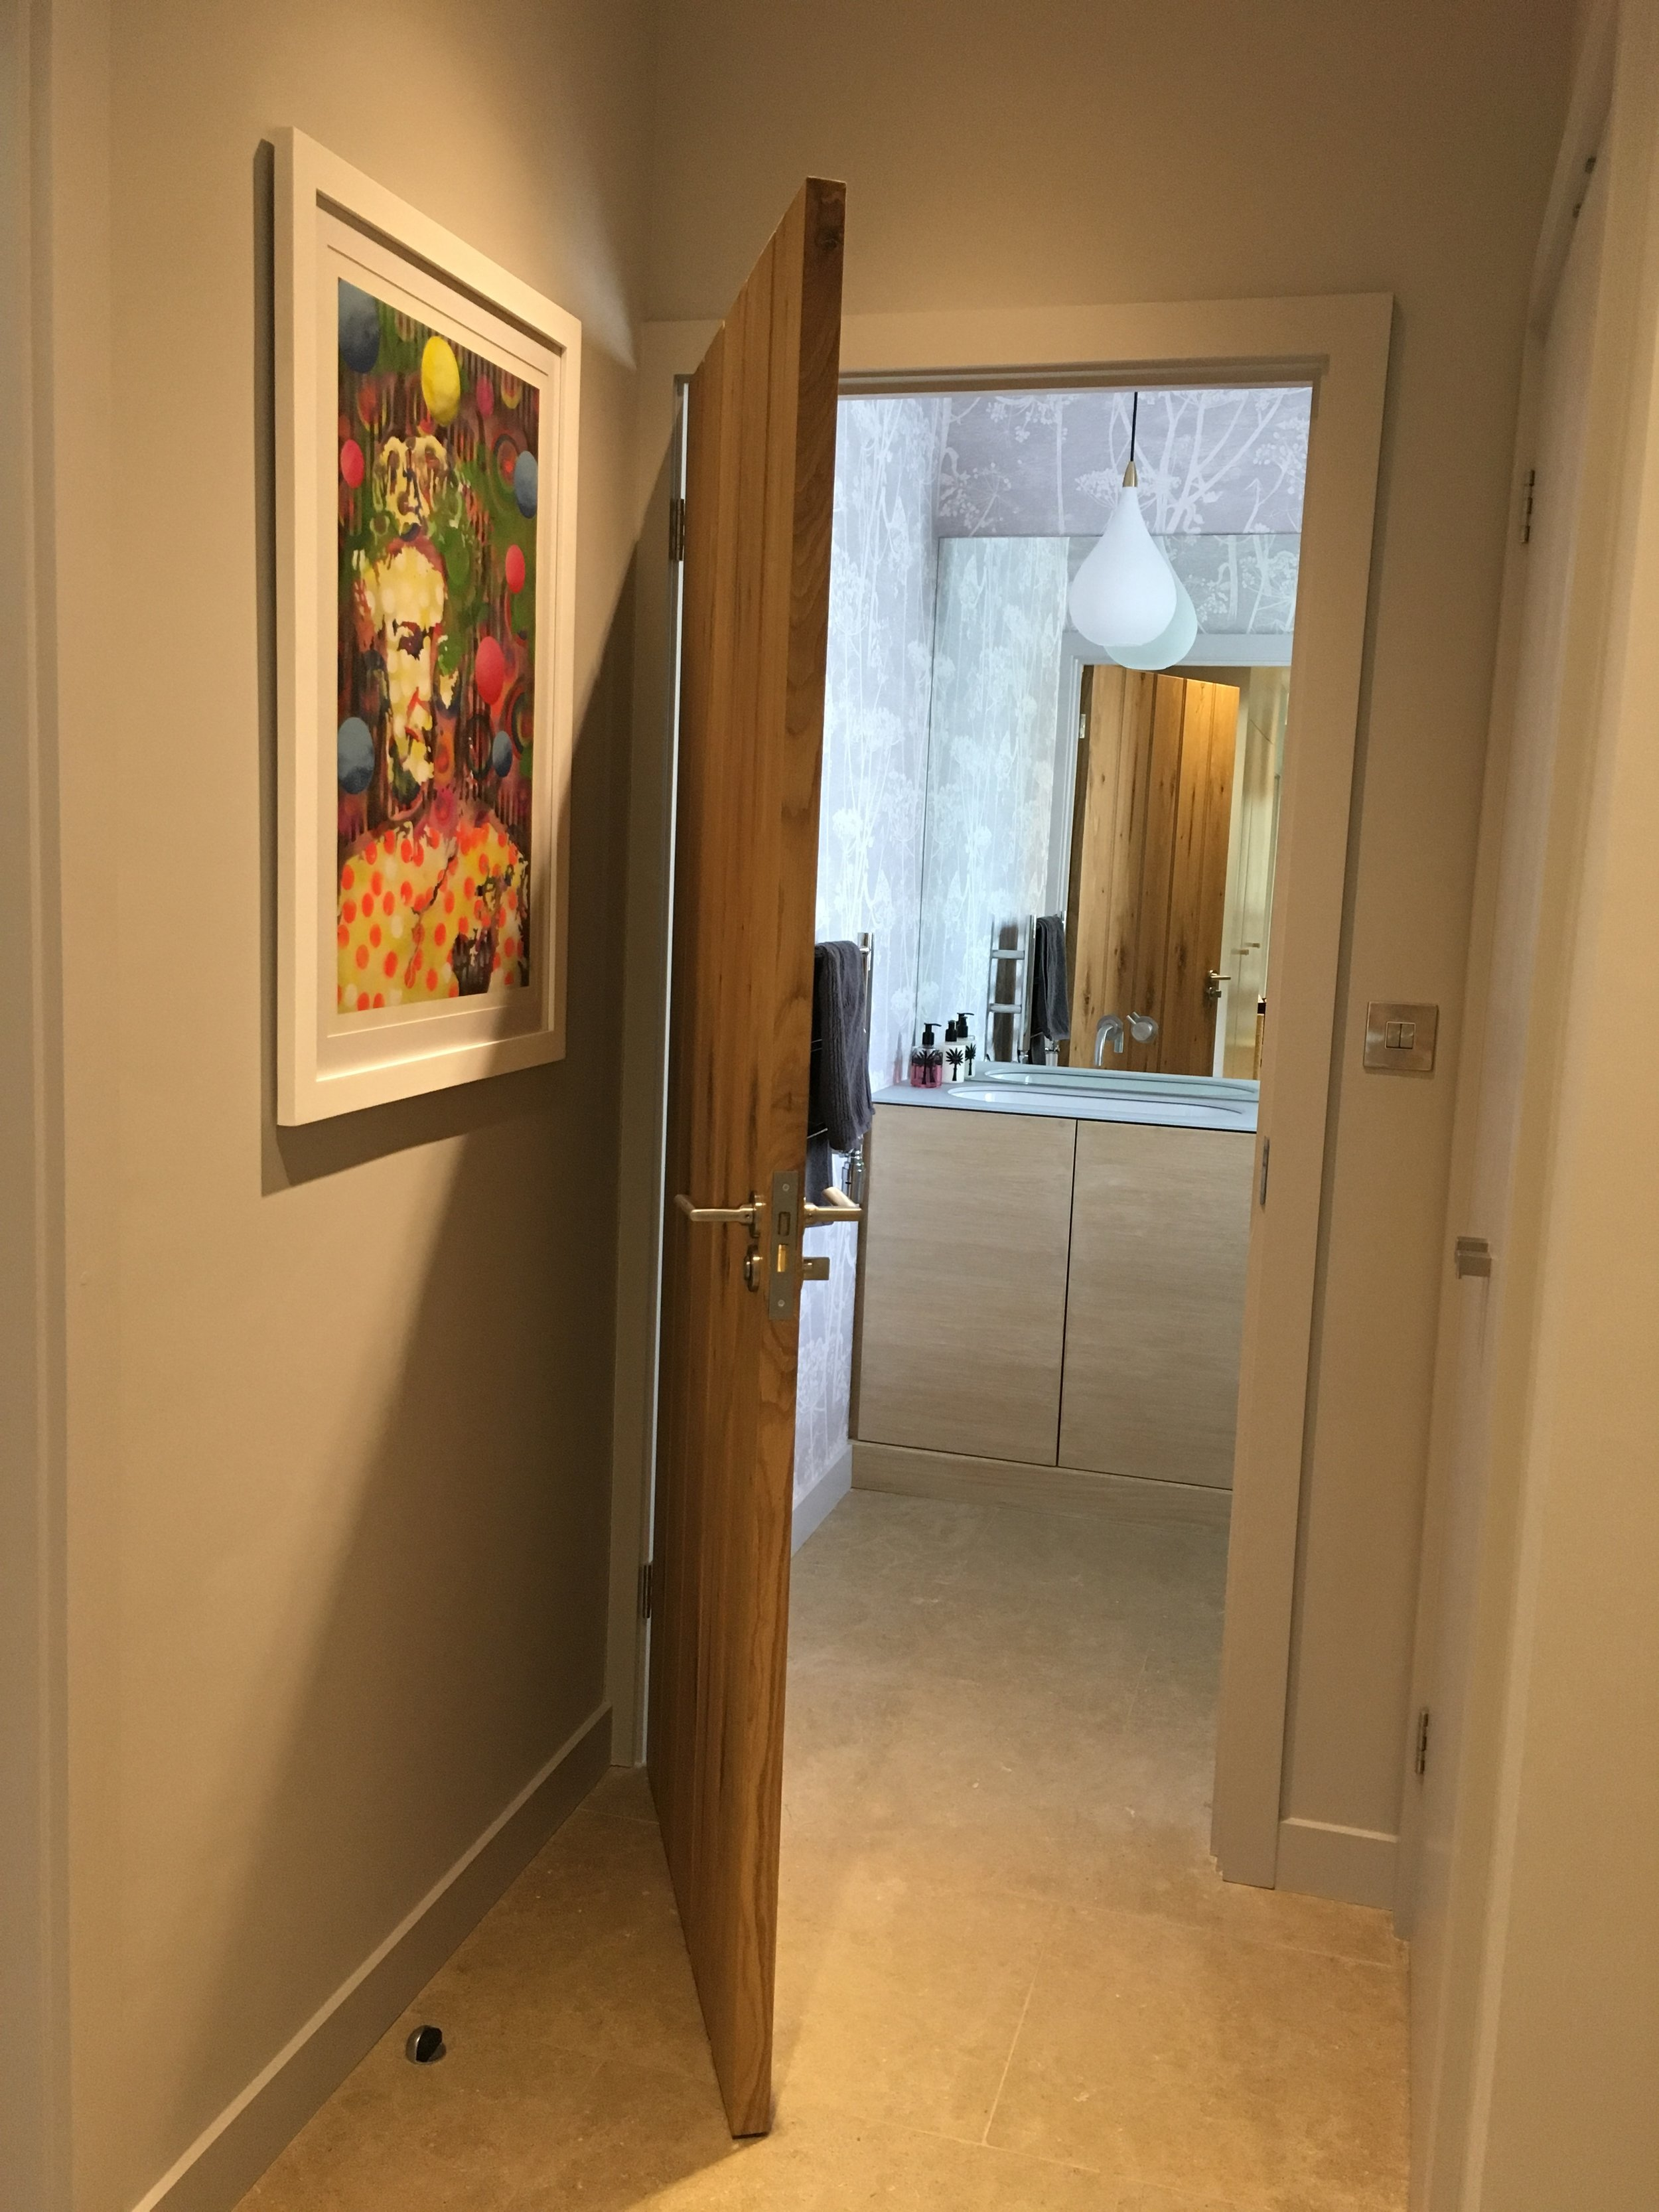 View into cloakroom through doorway. Contemporary artwork on wall.